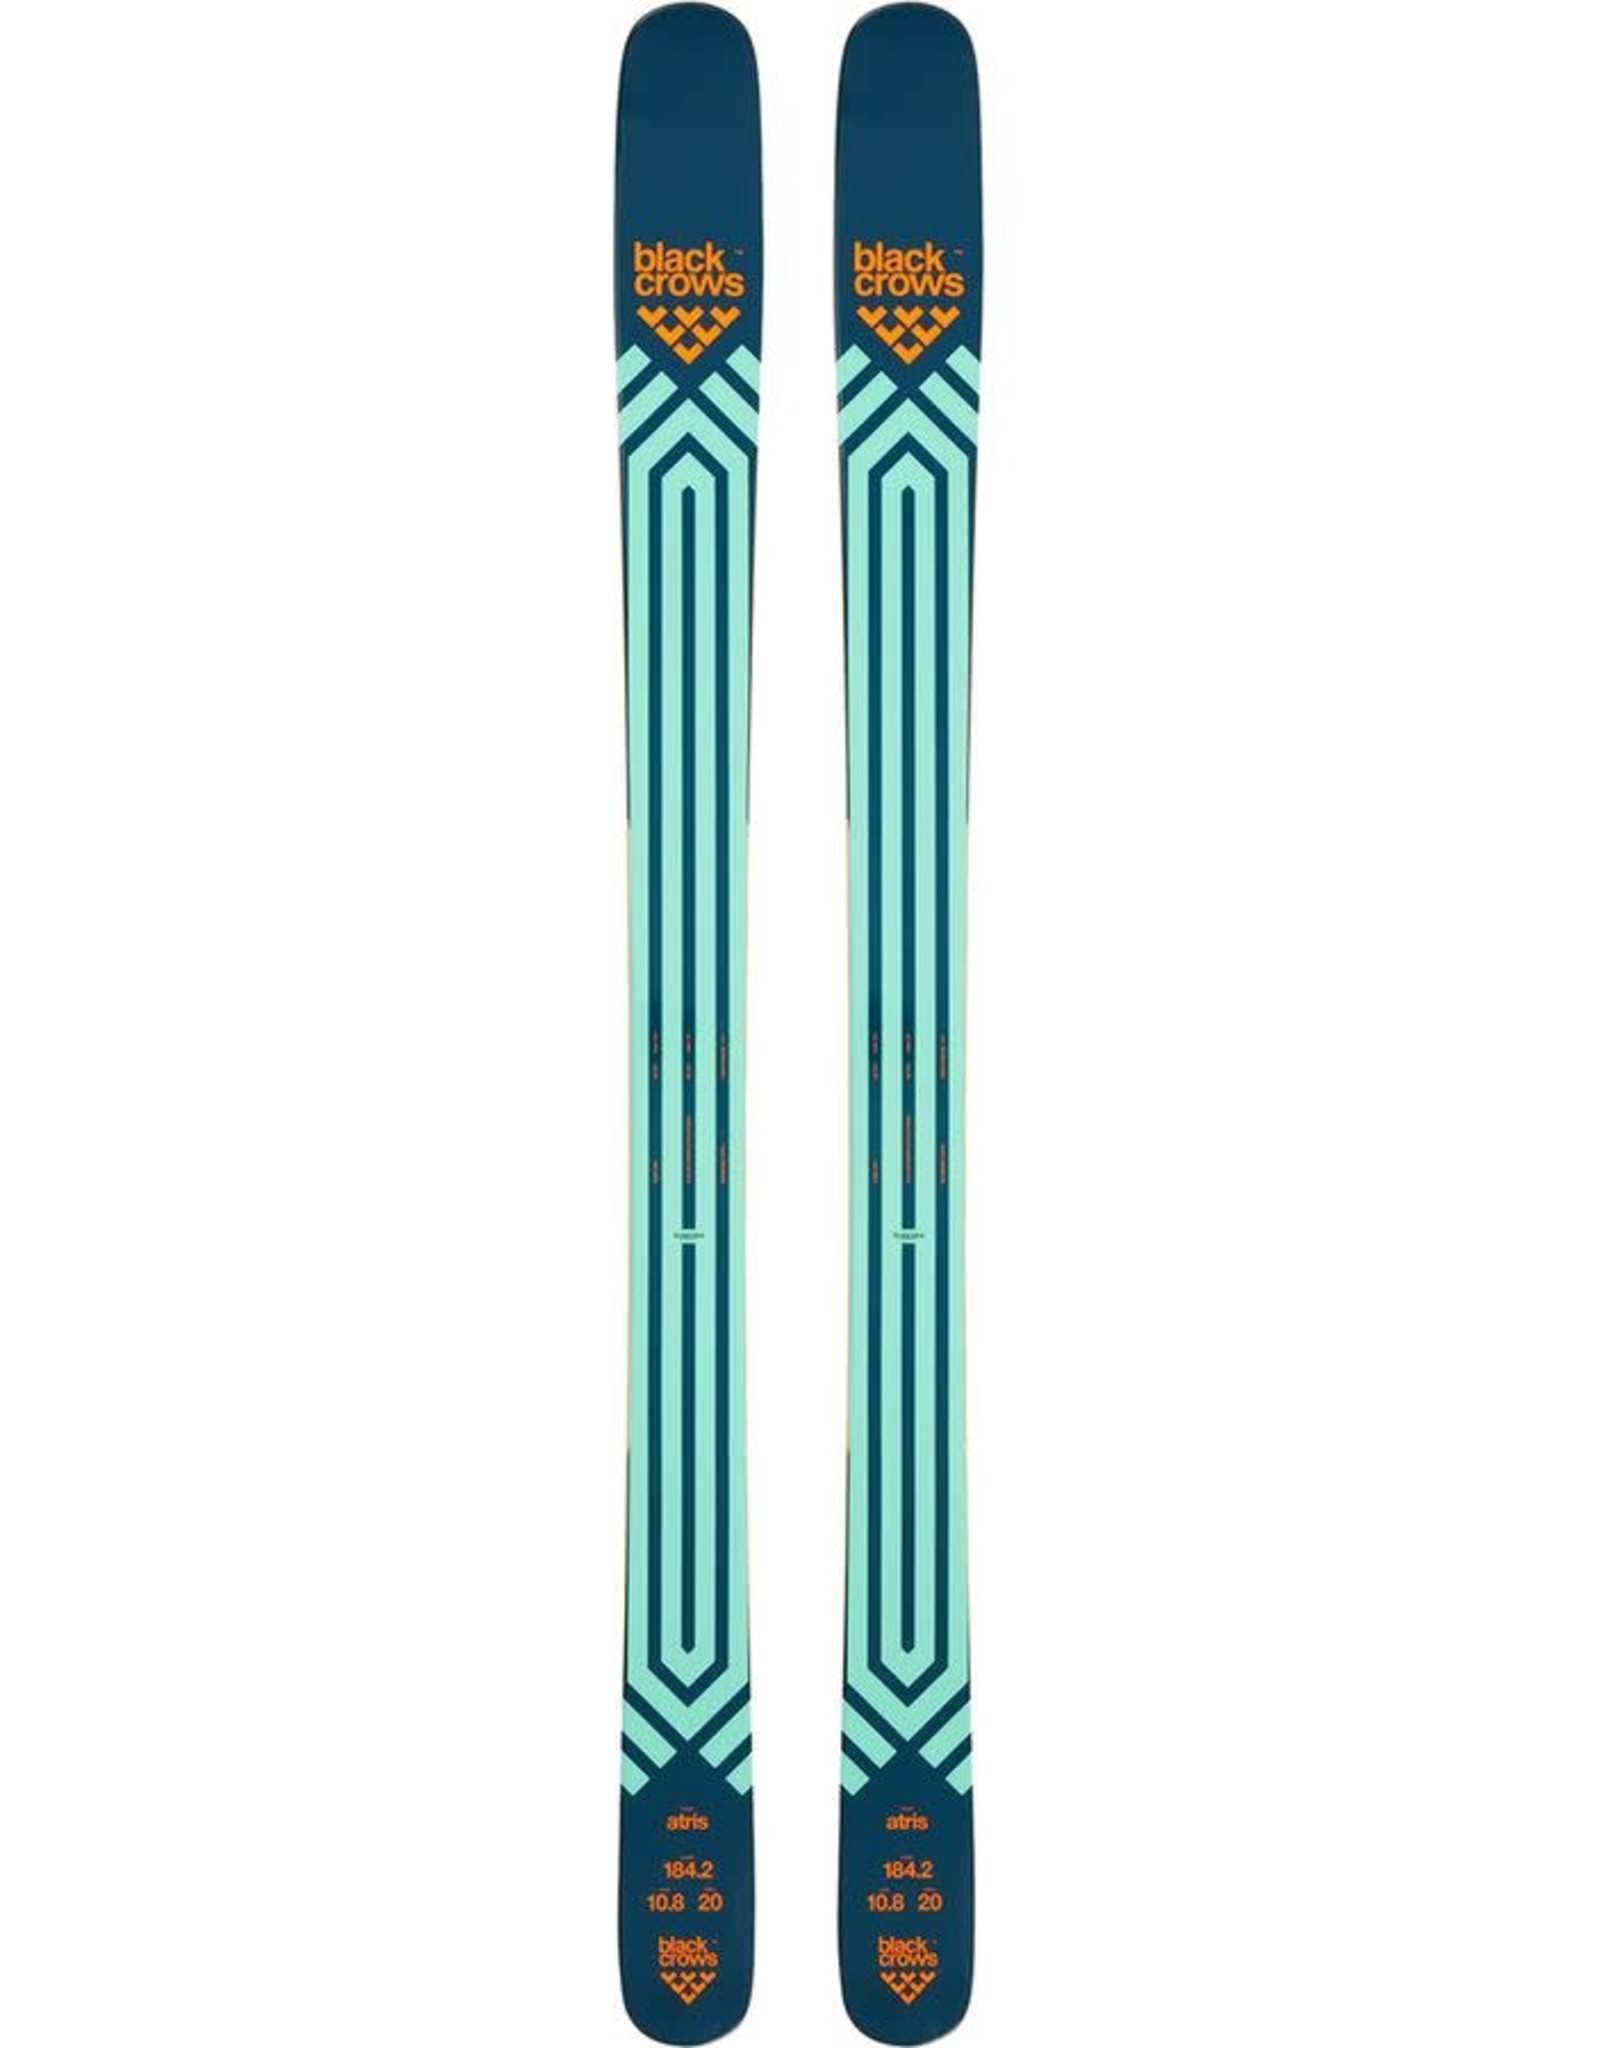 BLACK CROWS BLACK CROWS Skis ATRIS (20/21)